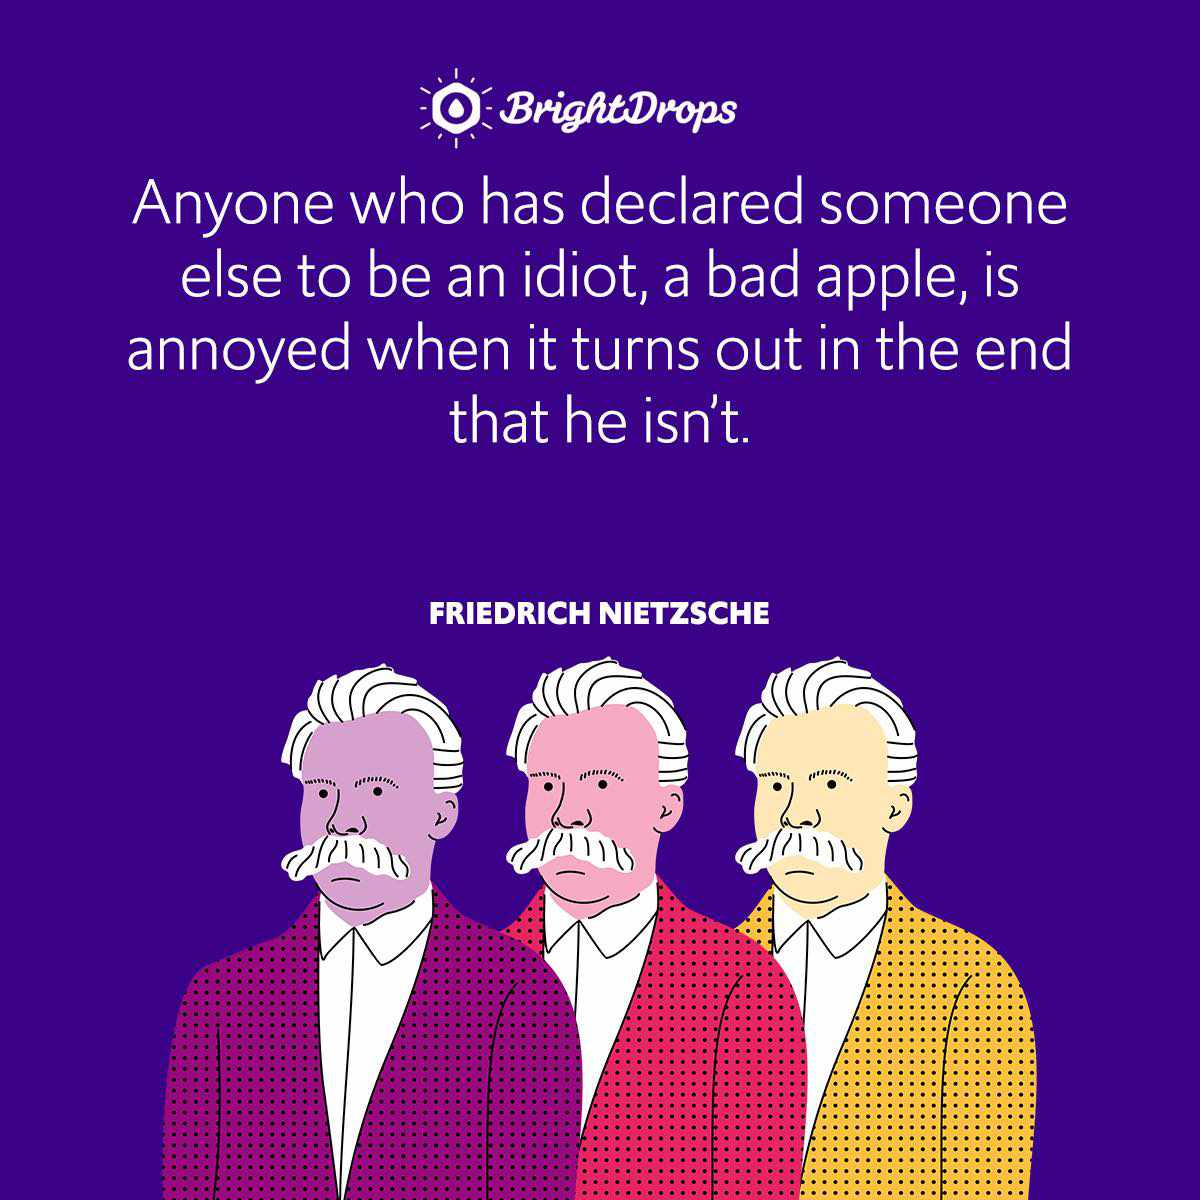 Anyone who has declared someone else to be an idiot, a bad apple, is annoyed when it turns out in the end that he isn't.